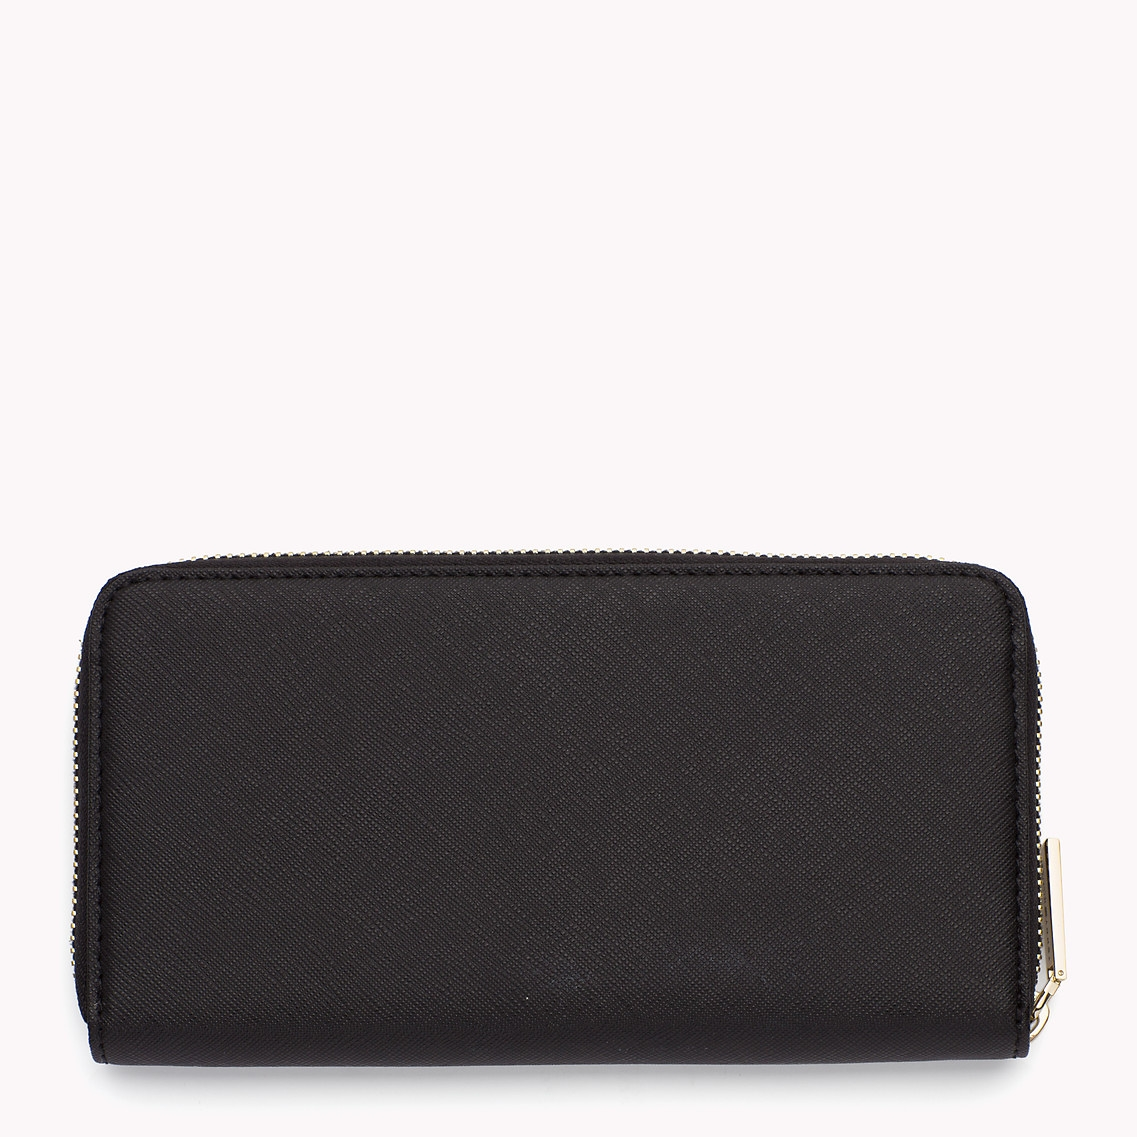 Tommy Hilfiger Women Wallet Black [AW0AW01246]